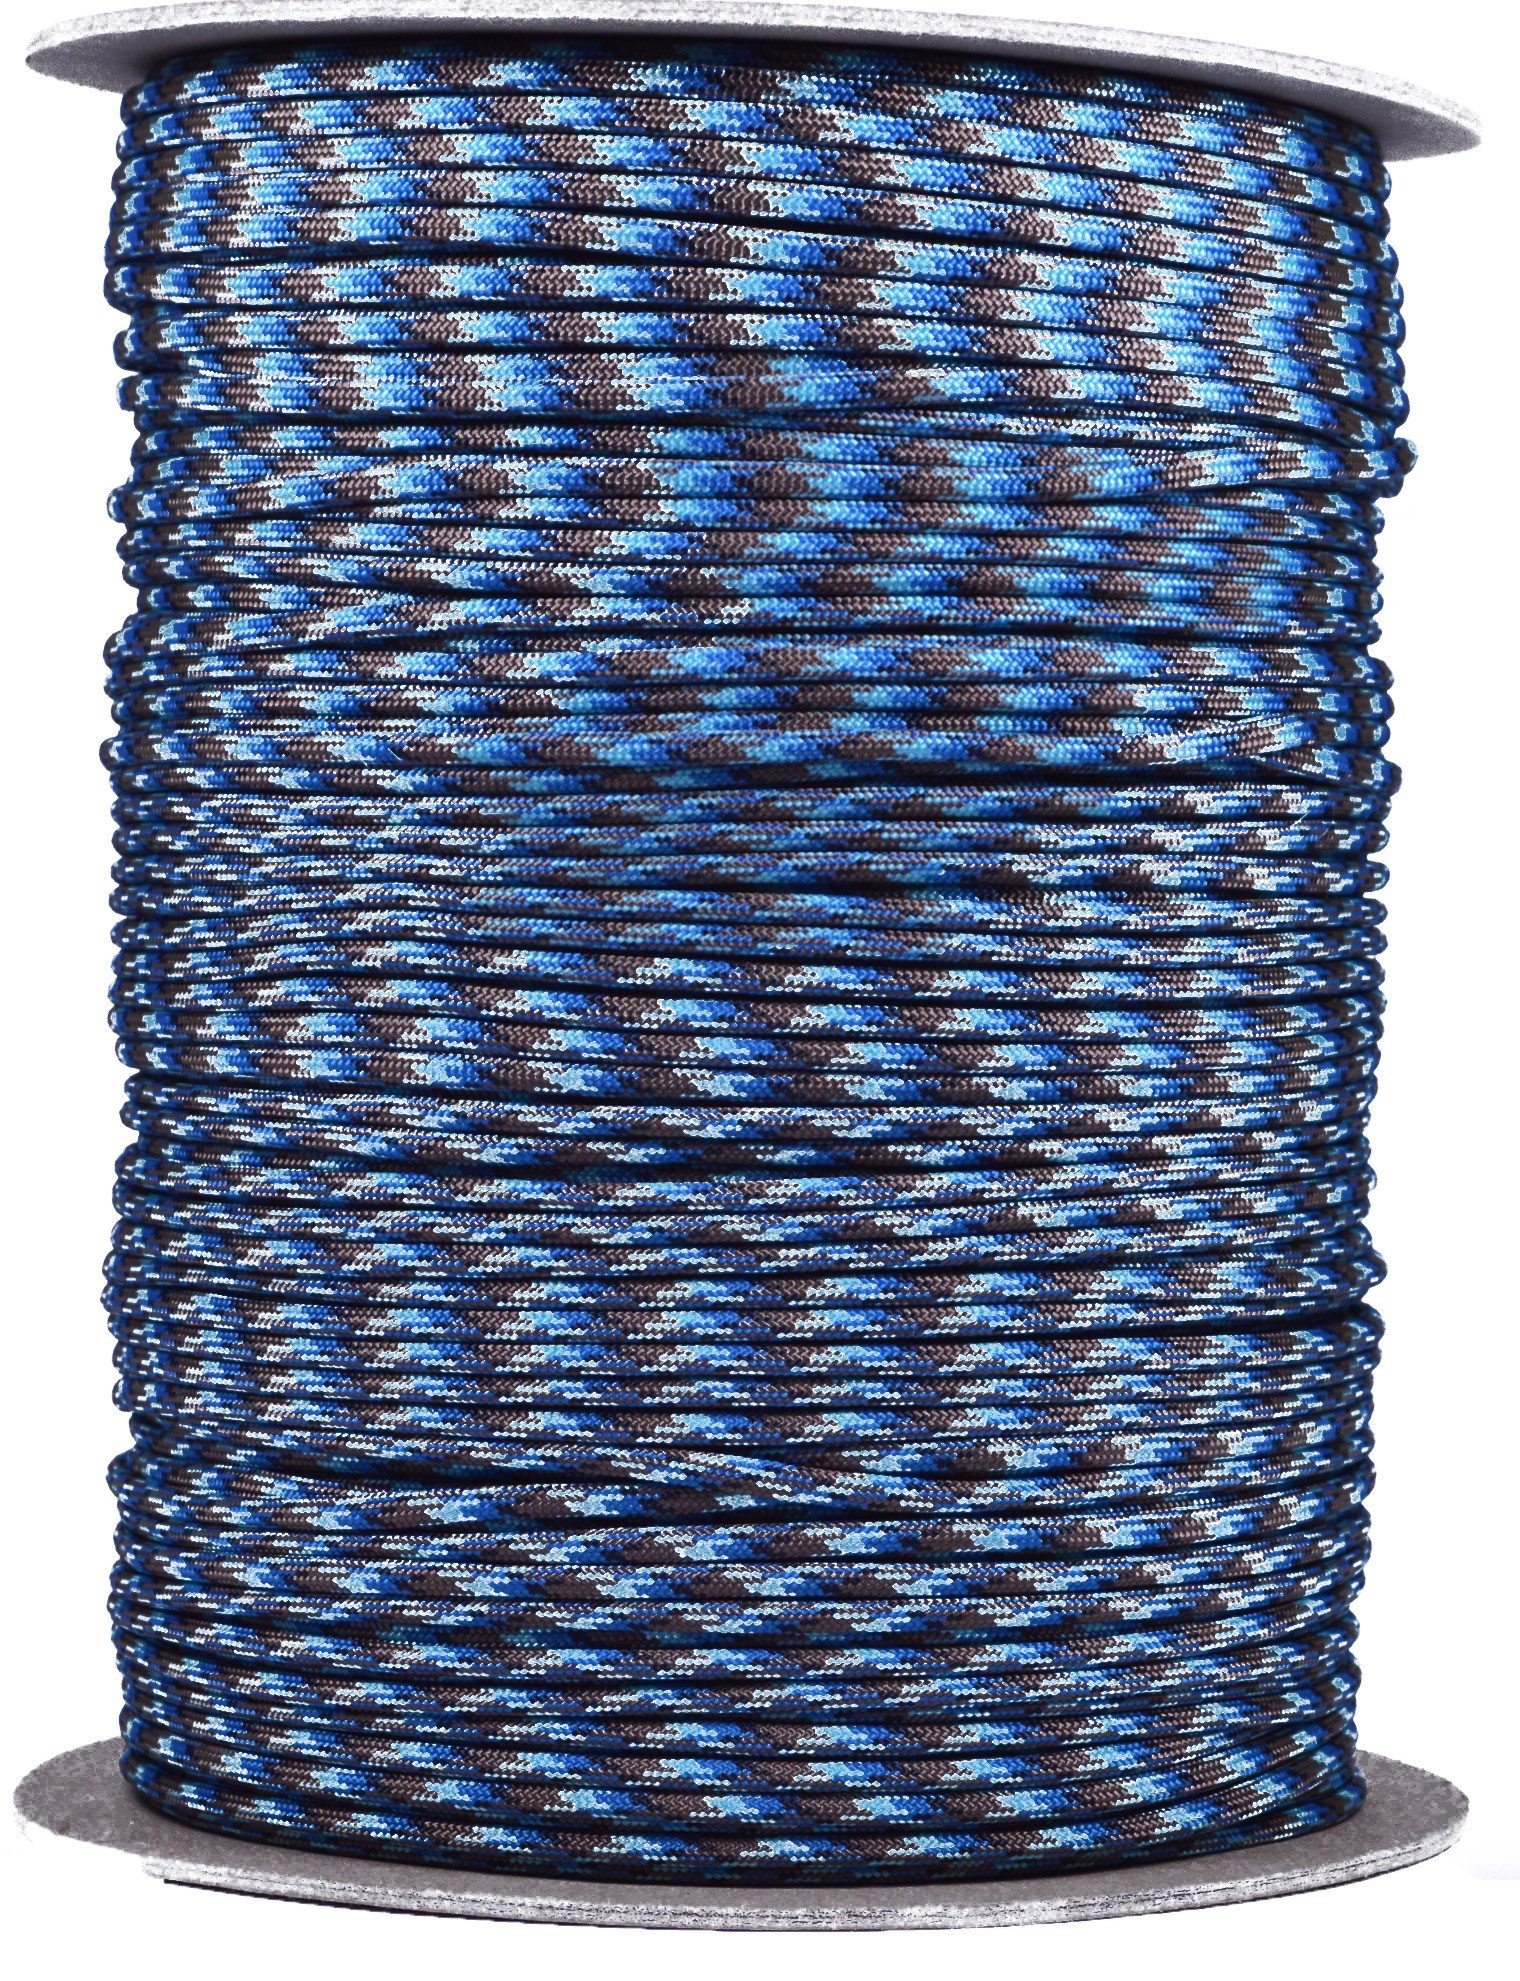 BoredParacord Brand Paracord (1000 ft. Spool) - Abyss by BoredParacord (Image #1)